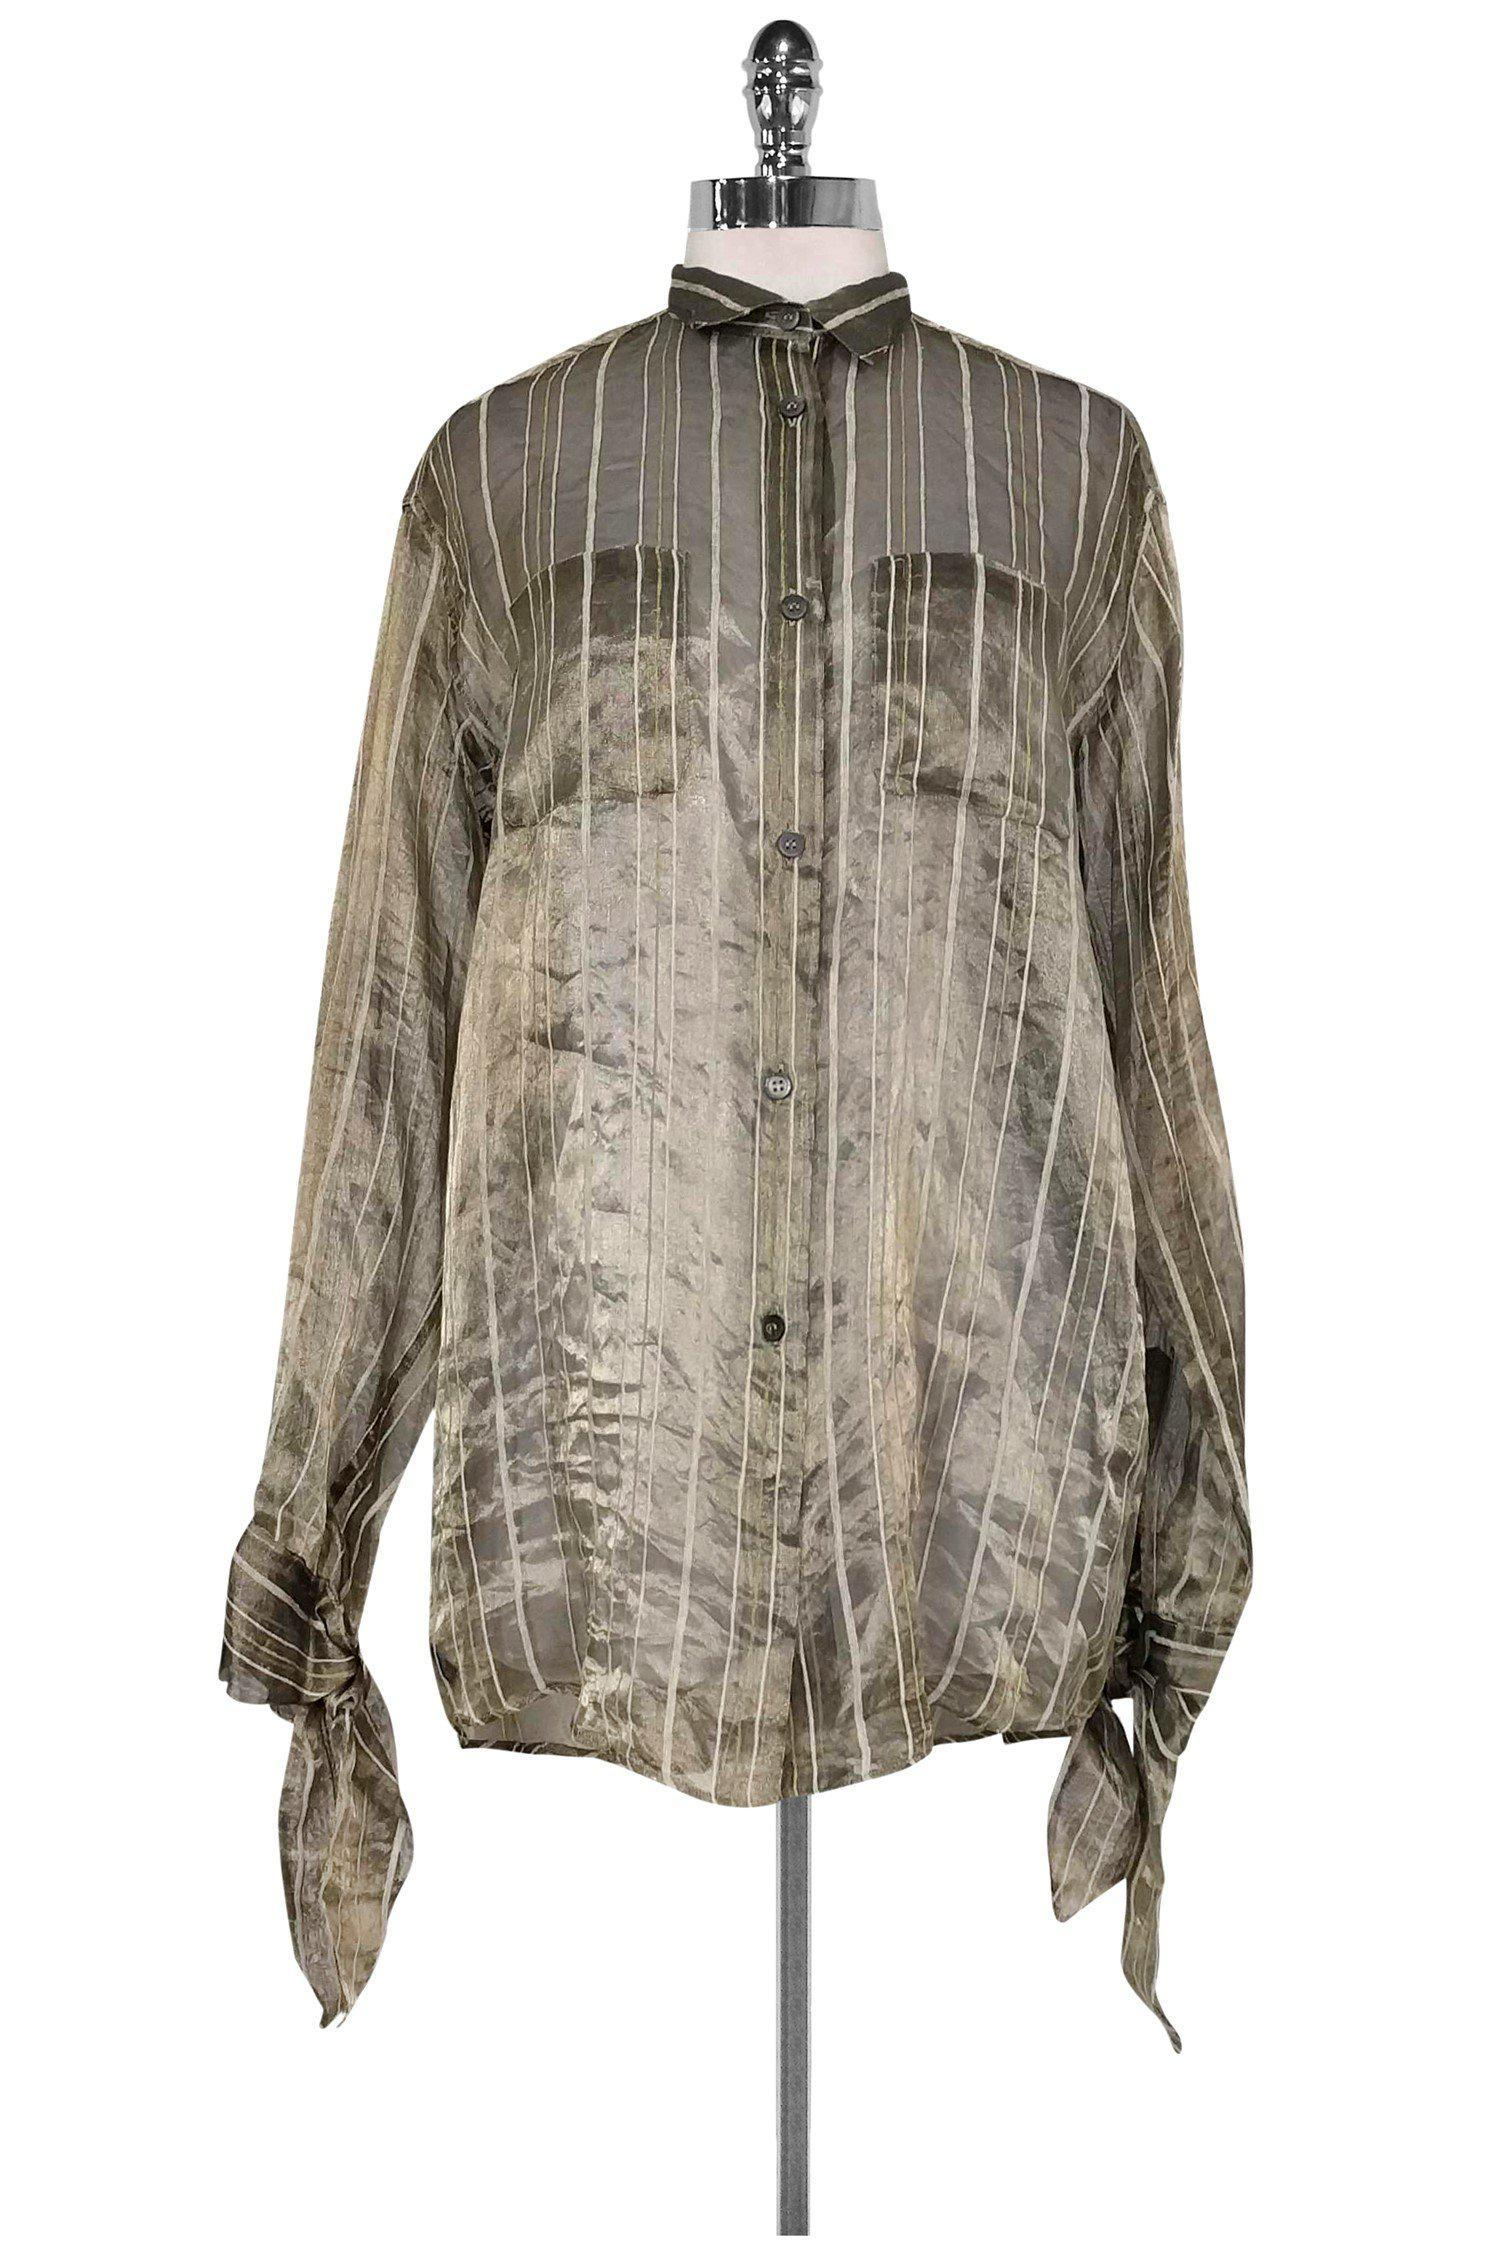 Romeo Gigli - Gold Semi -Sheer Button Down Top Sz 8